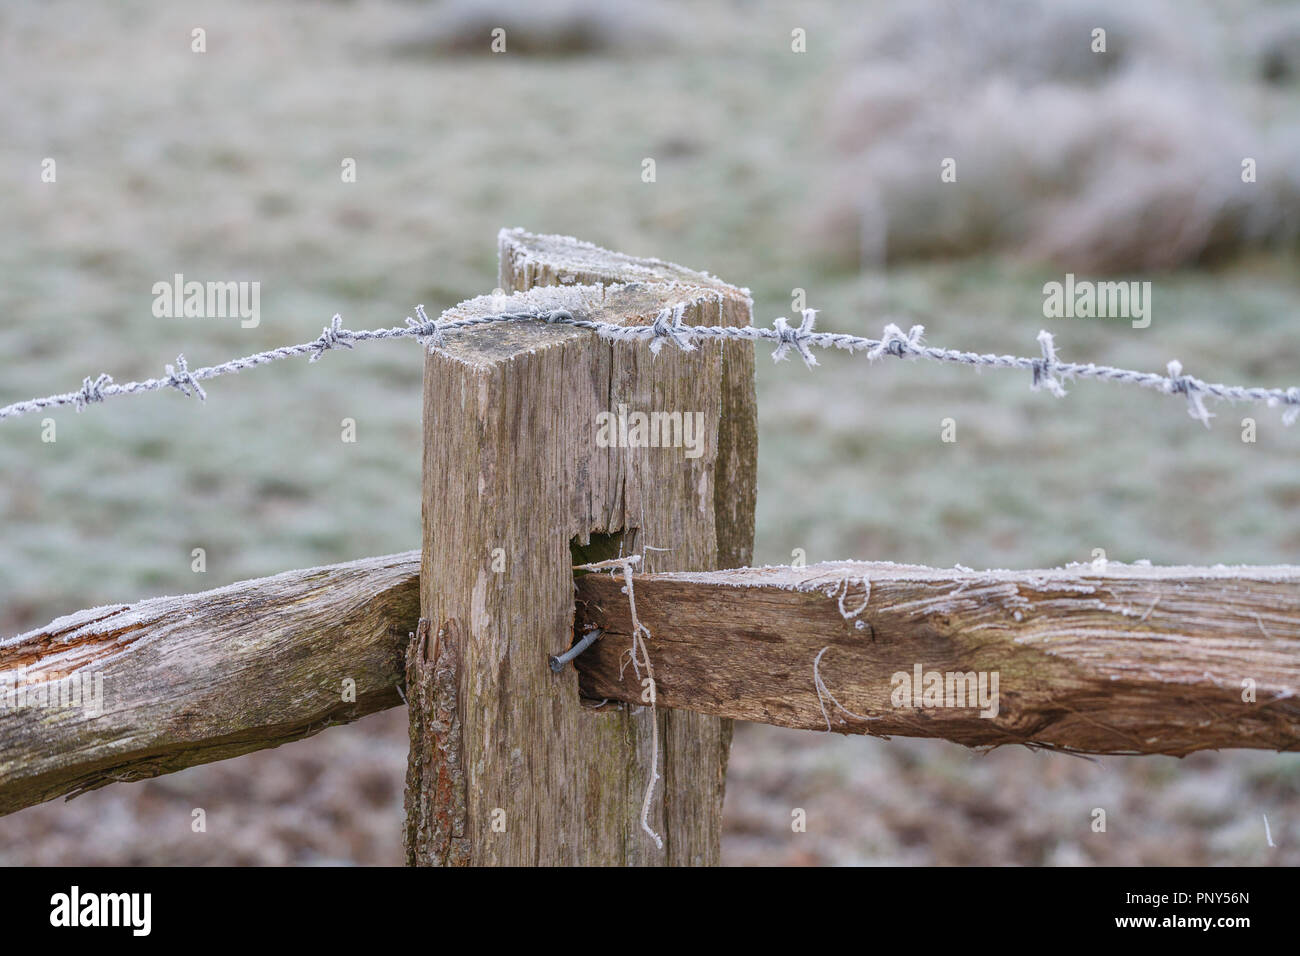 Wire Rail Stock Photos & Wire Rail Stock Images - Alamy